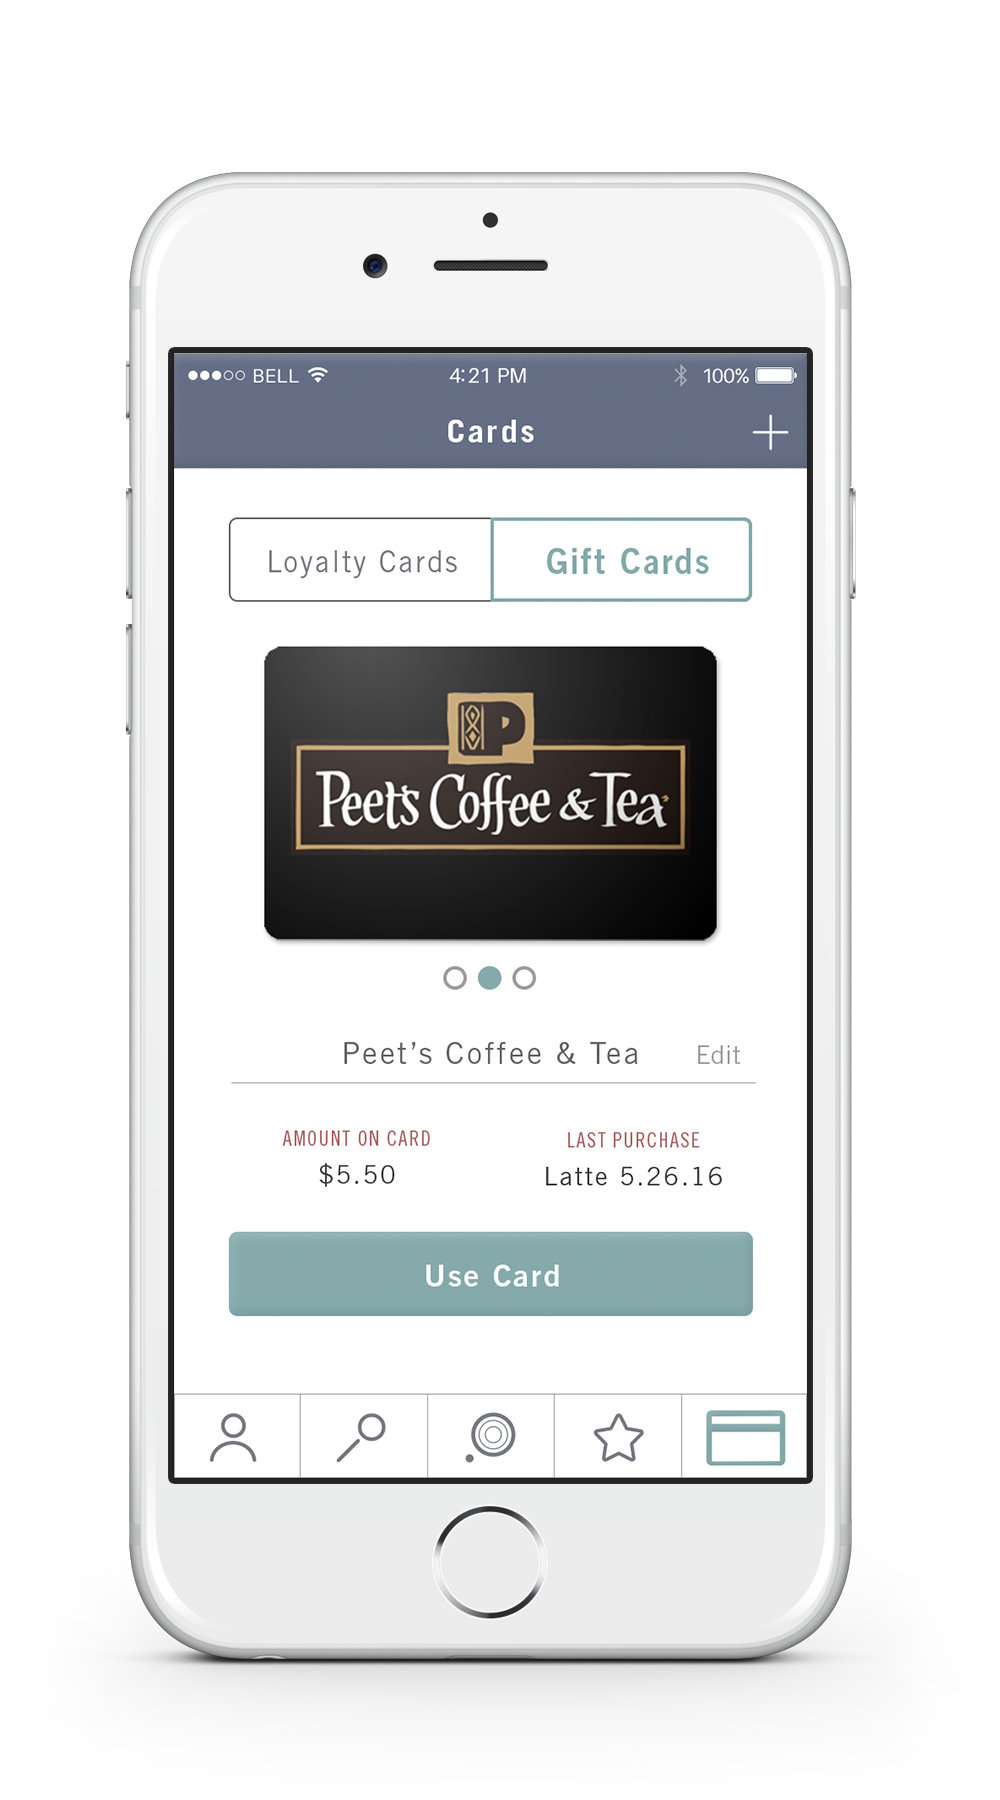 Gift Cards    —   The card tab also allows users to load gift cards they have received for the coffee and tea shops available on the app. This creates a convenient spot to store all of the beverage gift cards in one location.